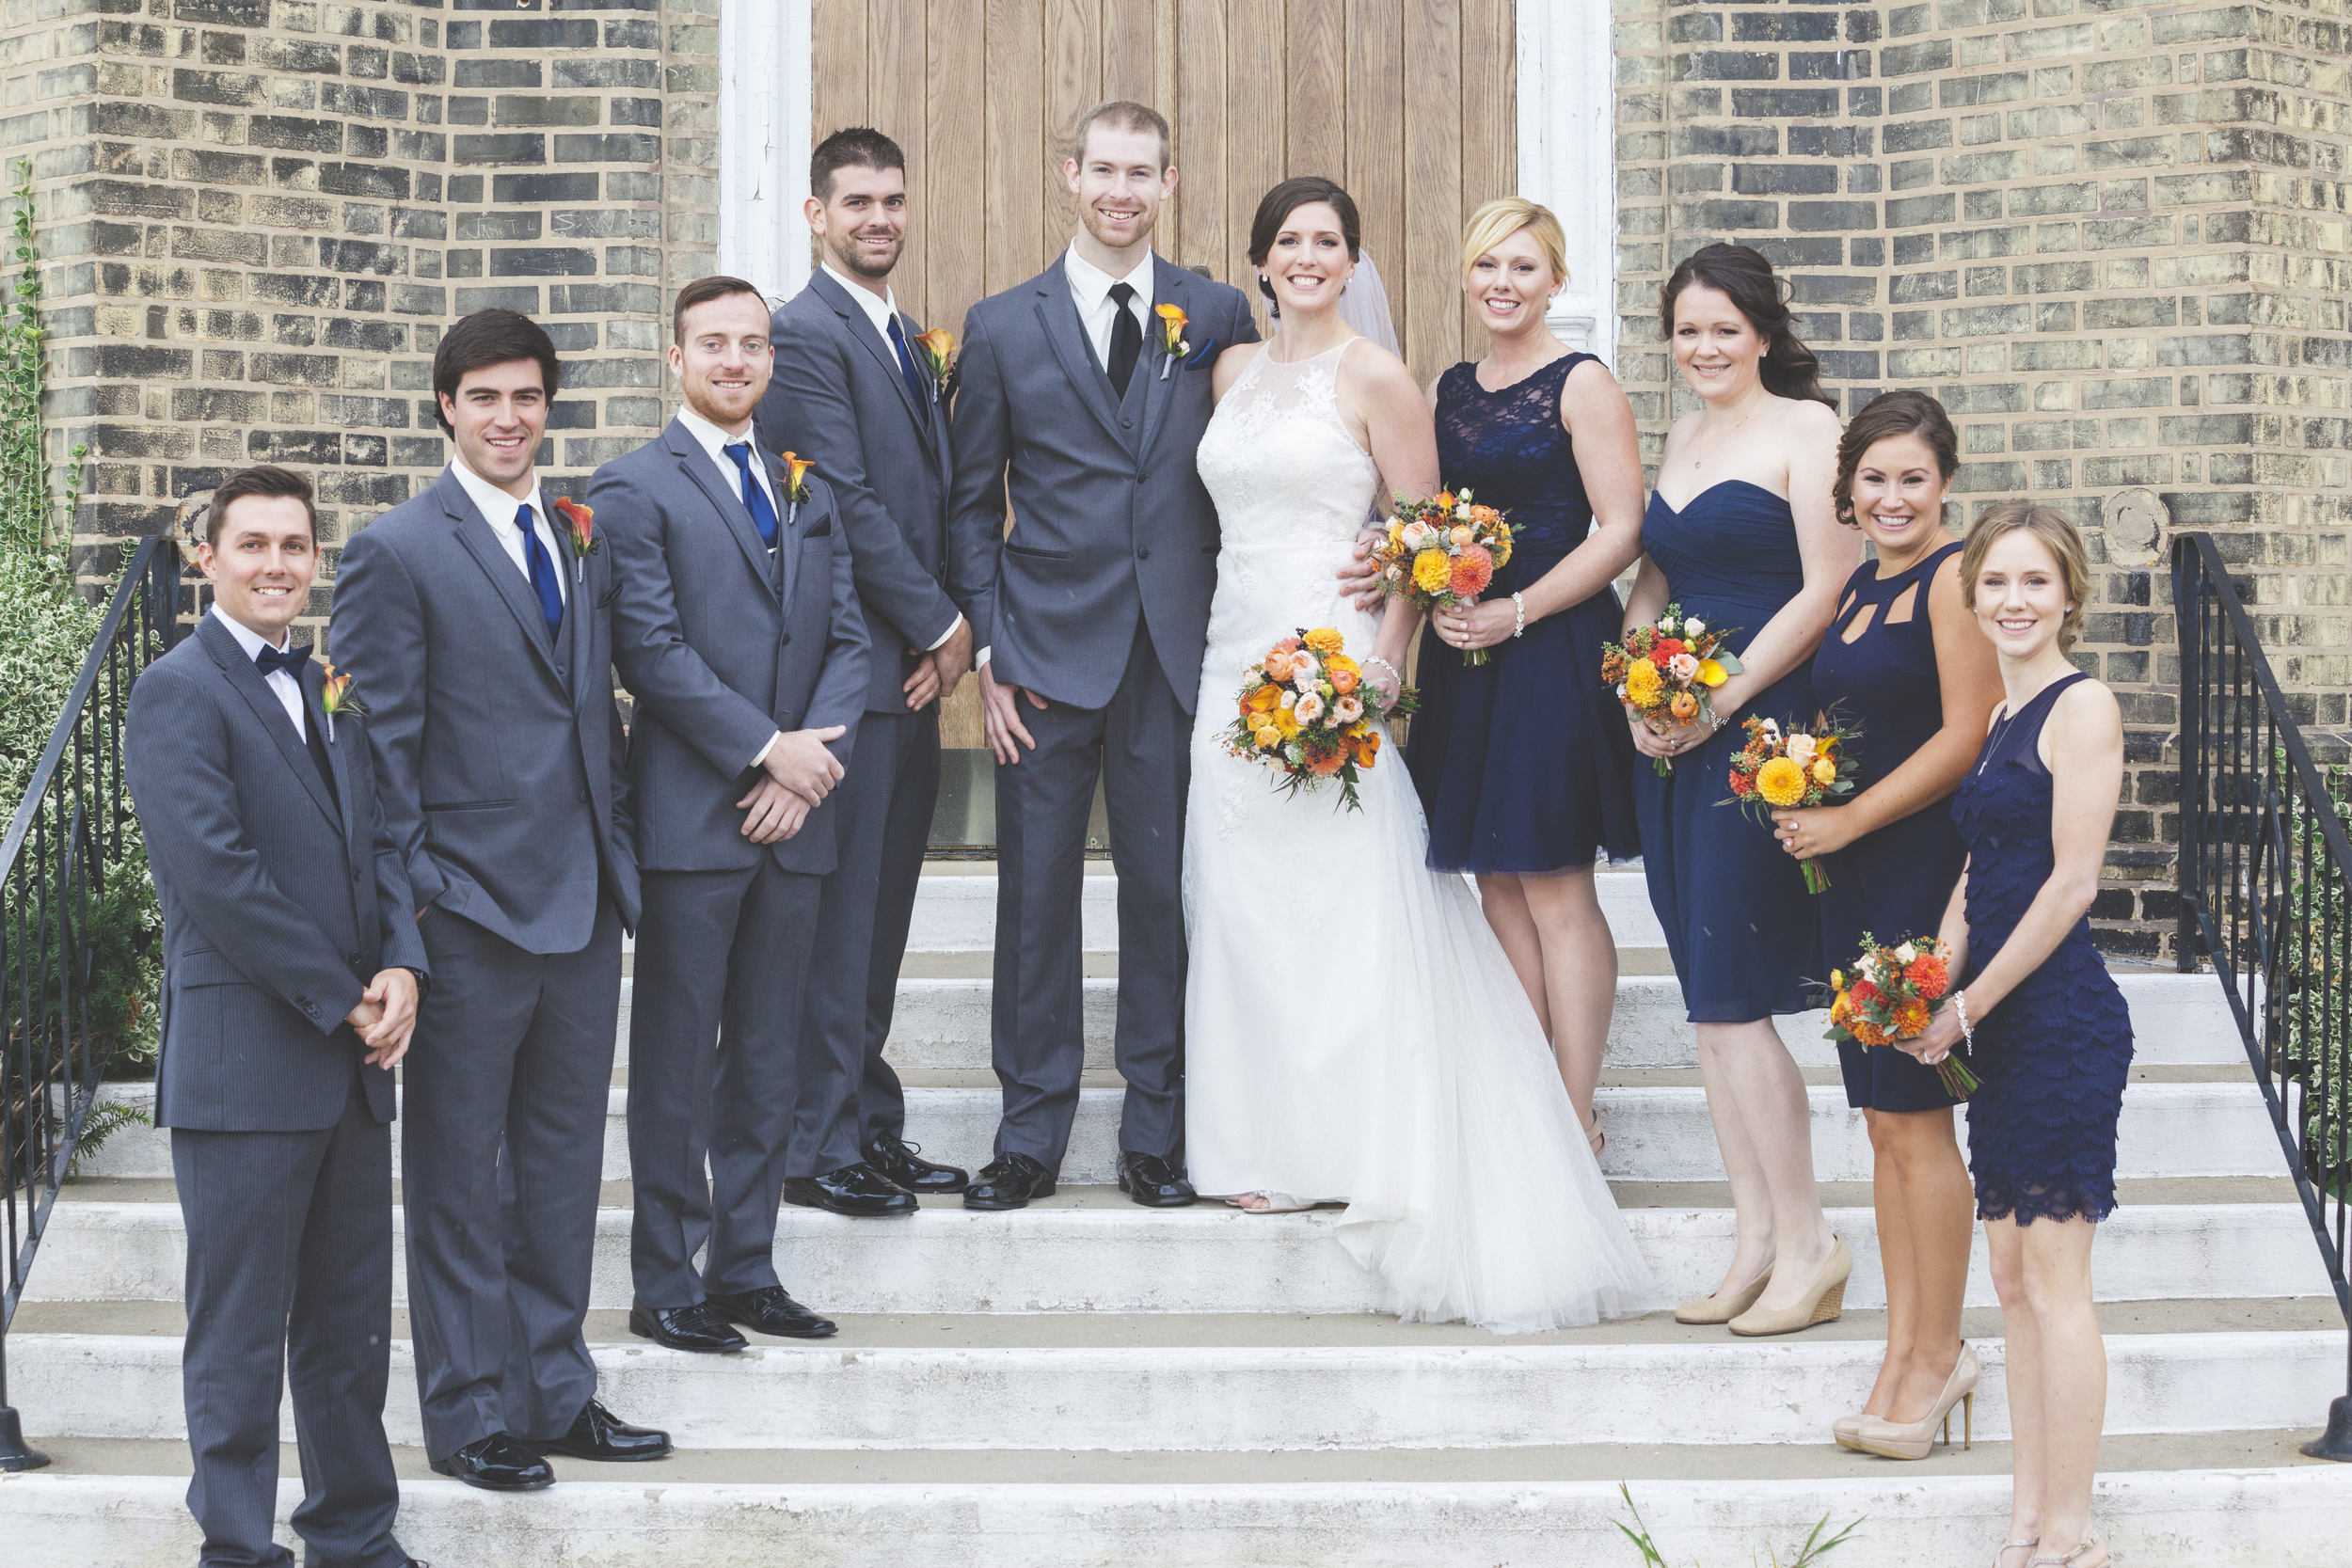 A wedding party photo on the steps of St. Basil Church.